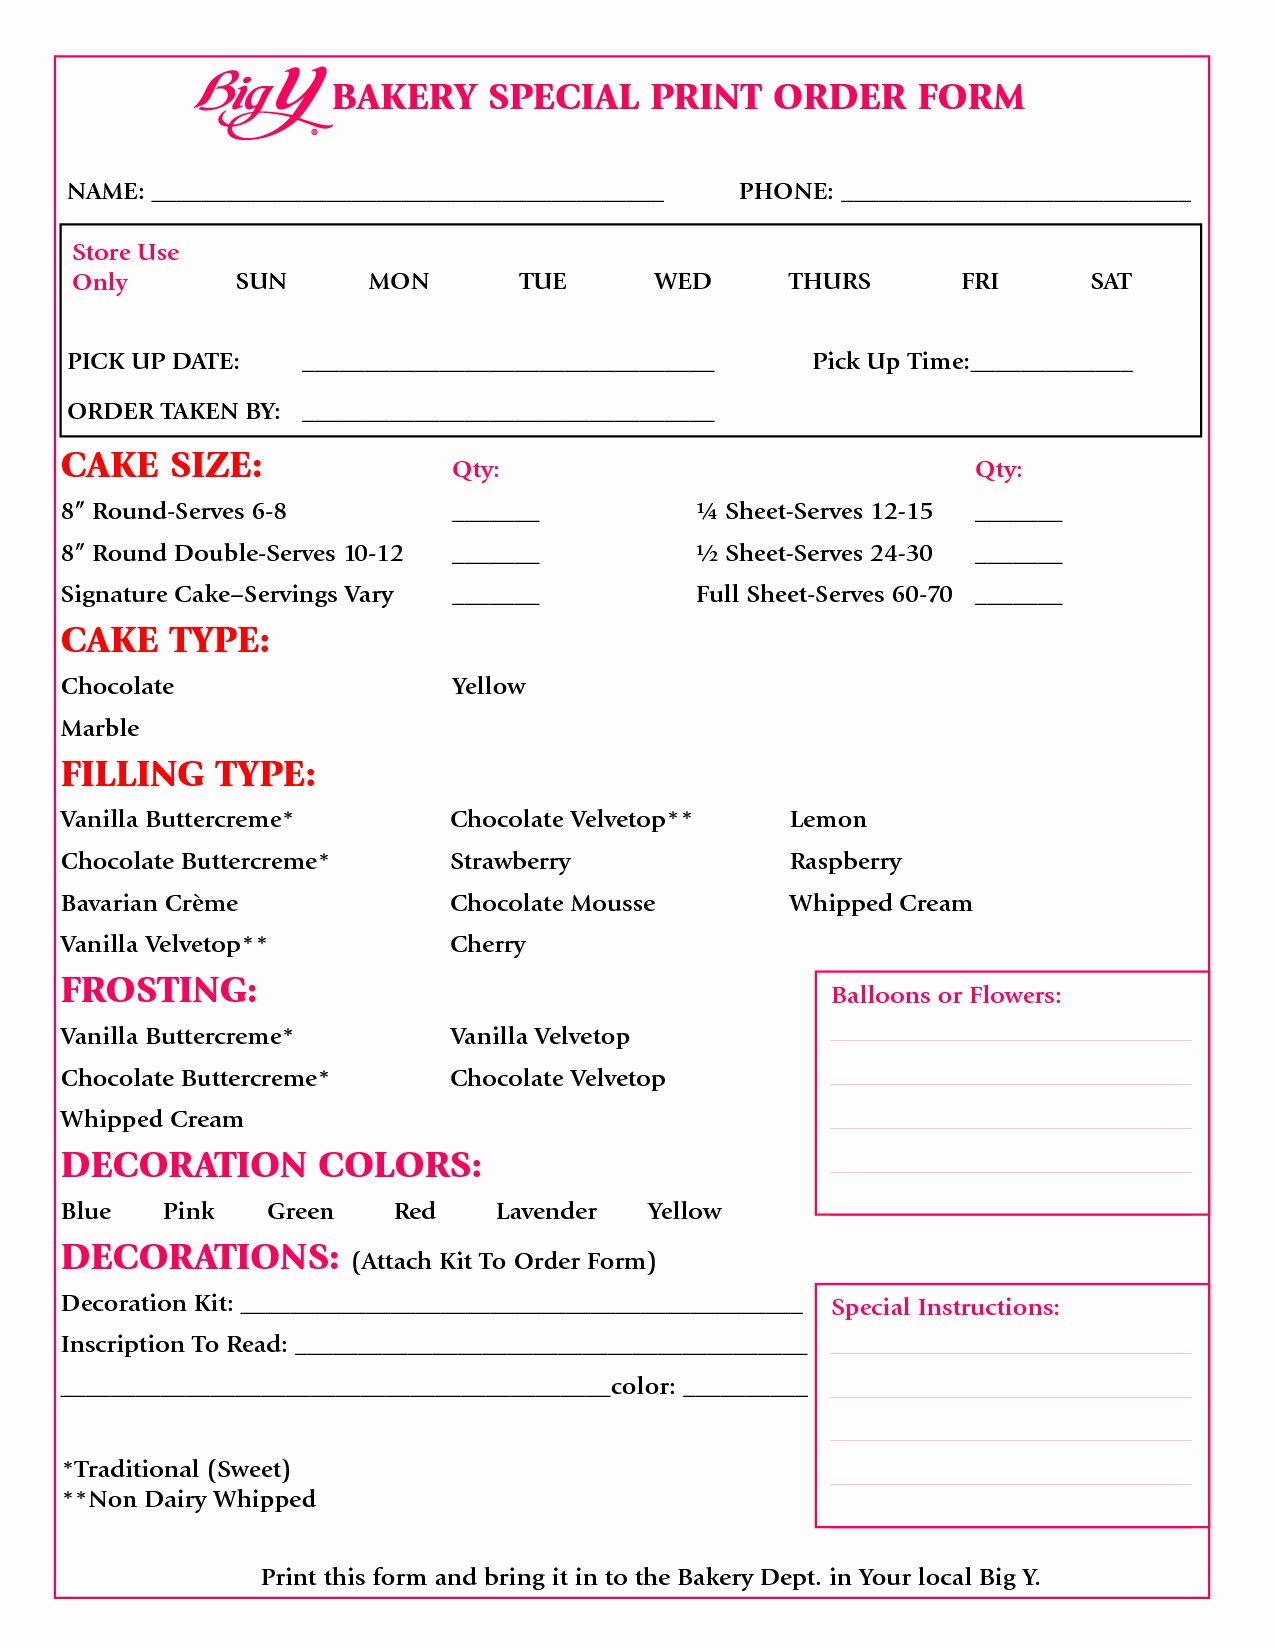 Cake order forms Templates Luxury Bakery Costing Spreadsheet